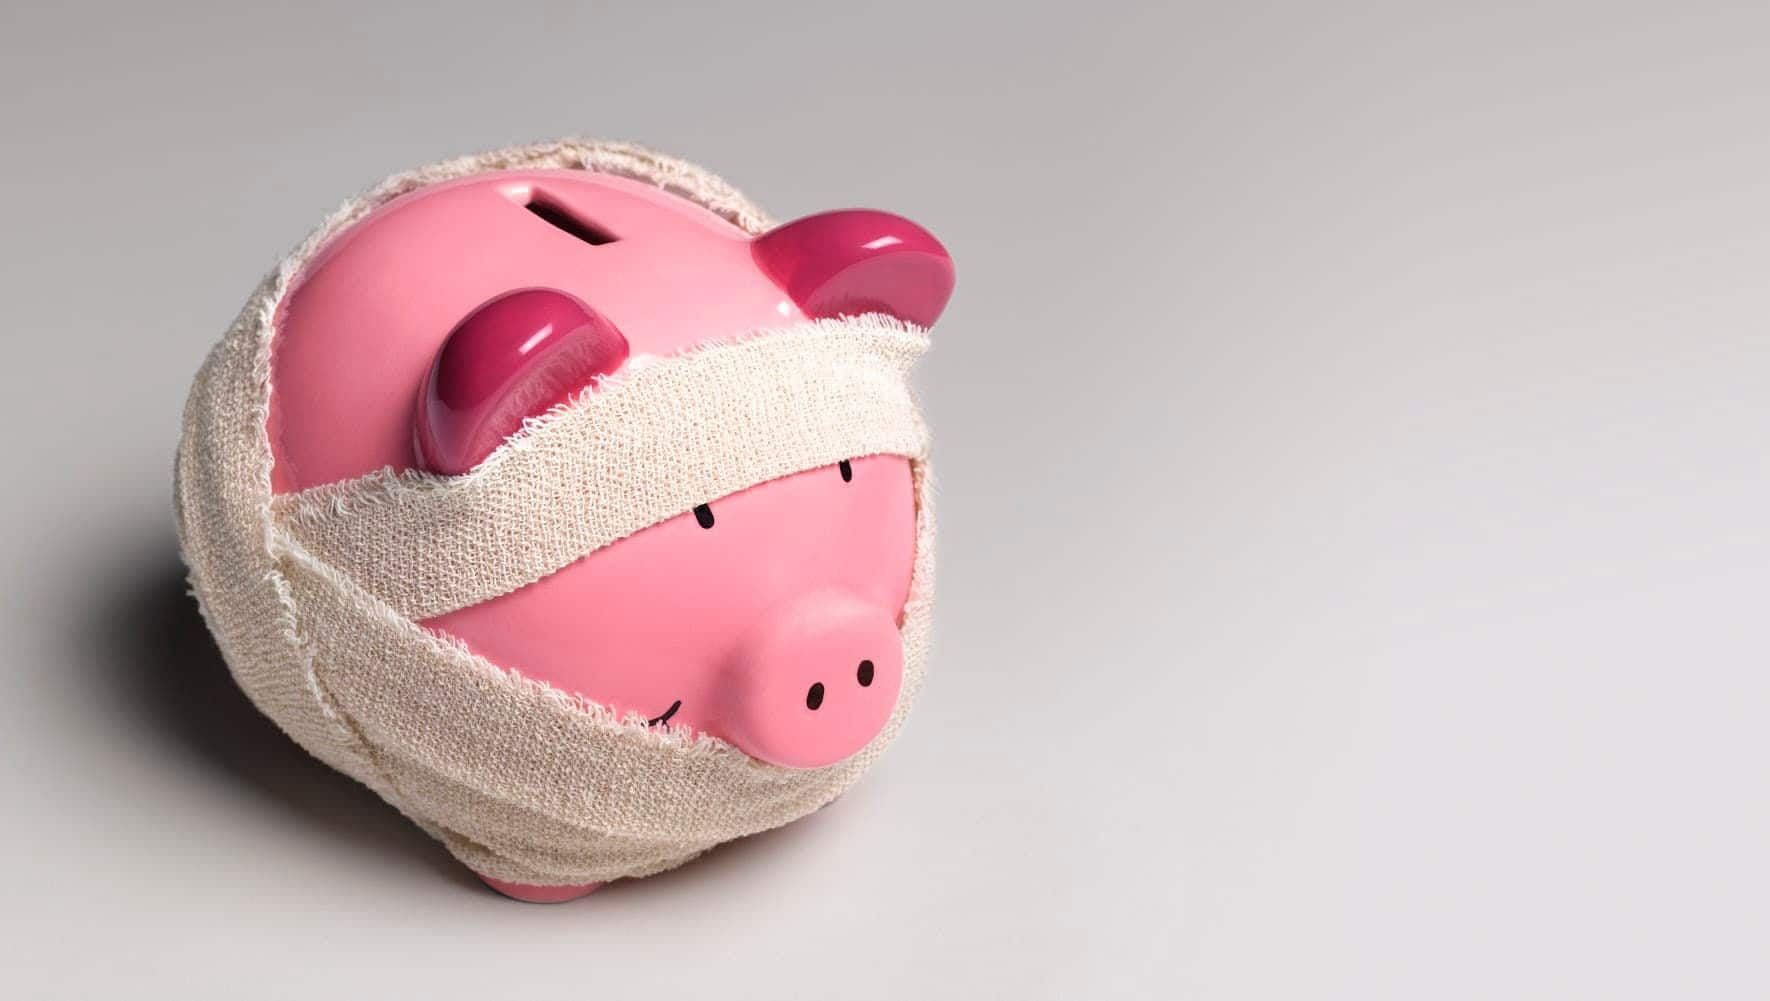 Pink piggy bank wrapped in bandages.